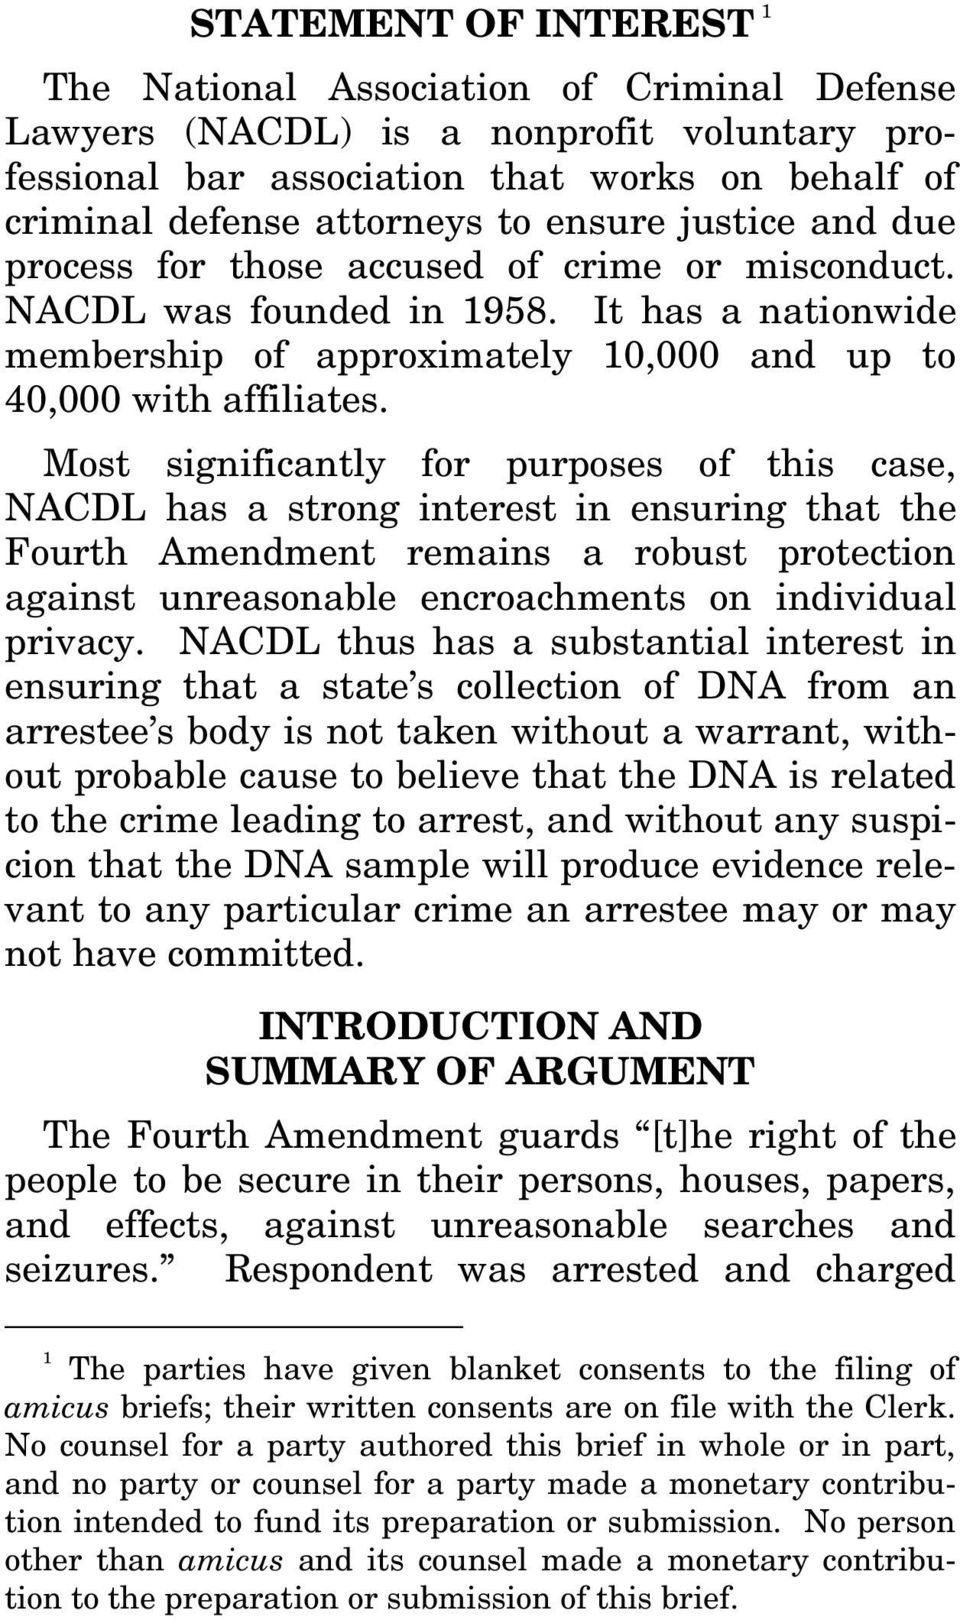 Most significantly for purposes of this case, NACDL has a strong interest in ensuring that the Fourth Amendment remains a robust protection against unreasonable encroachments on individual privacy.